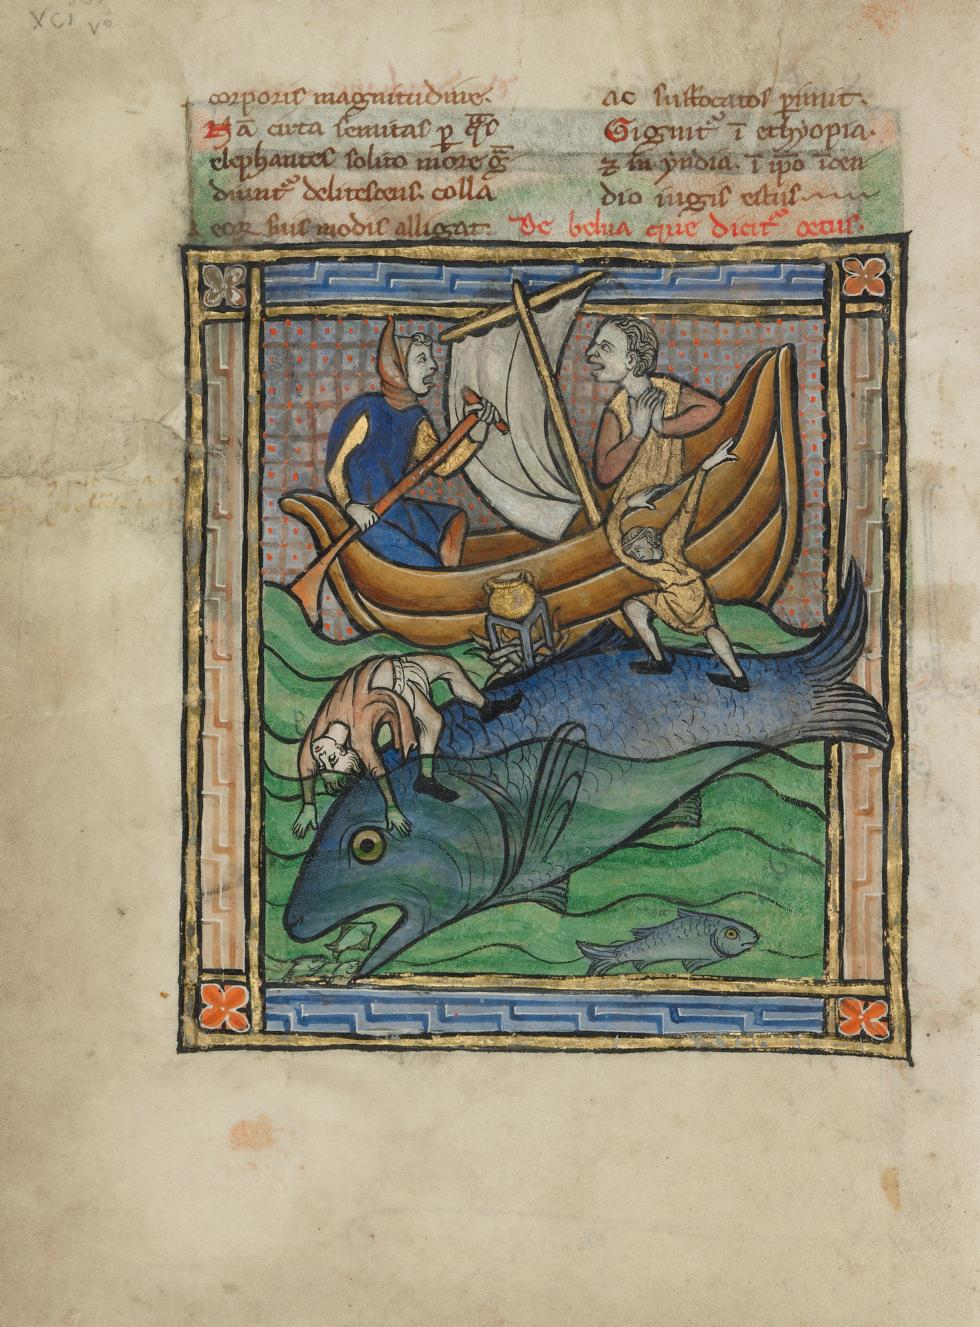 Fantastic Beasts - Find them at the Getty - Medievalists.net